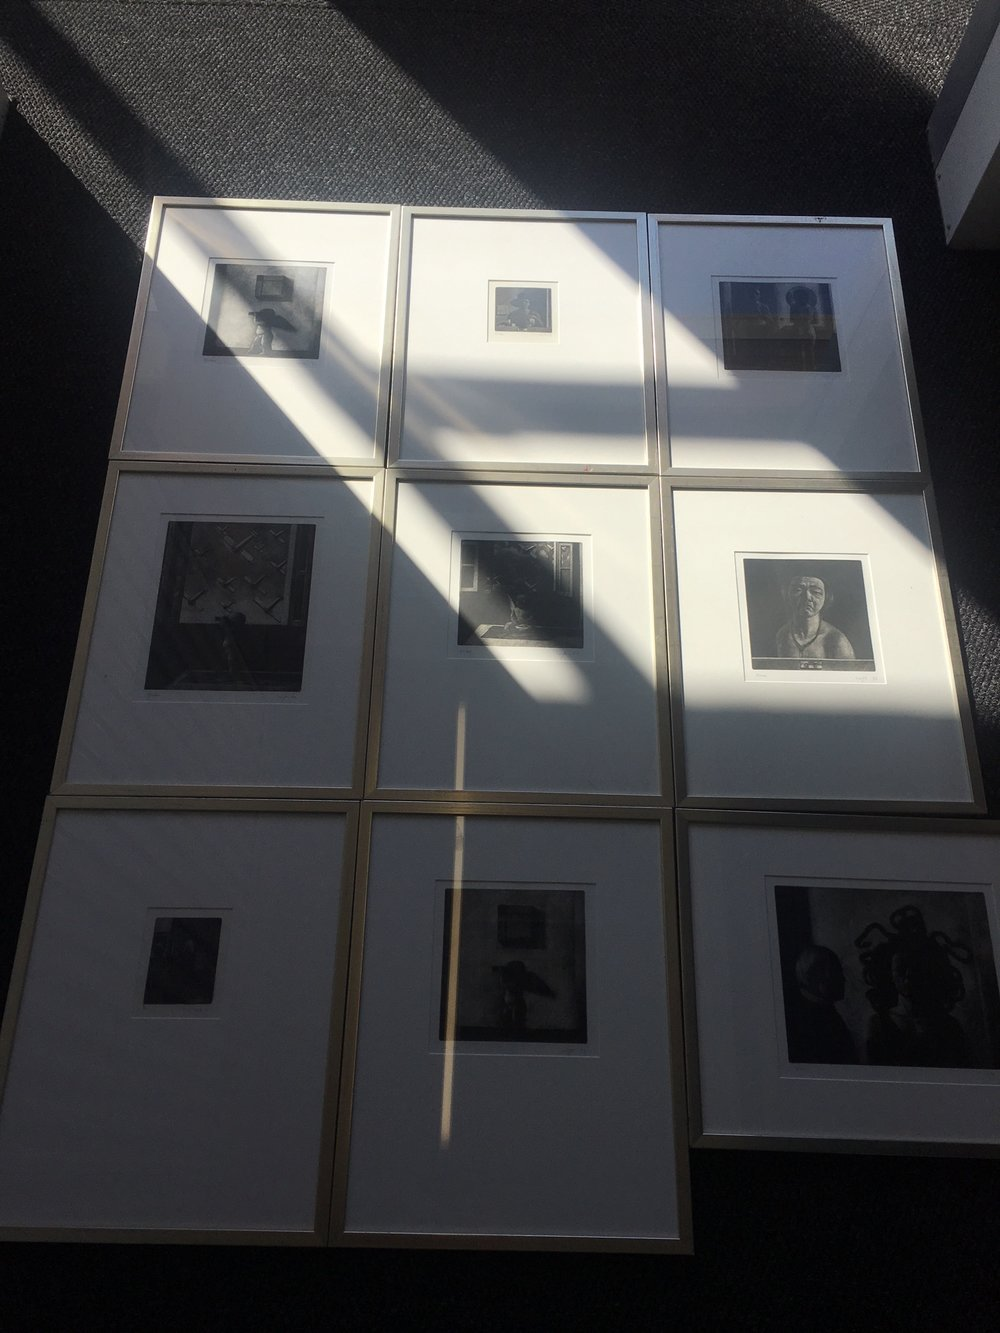 Set of 8 Liu Ye Mezzotint prints, all artist proofs originating from his very first exhibitions in Europe at Taube Gallery